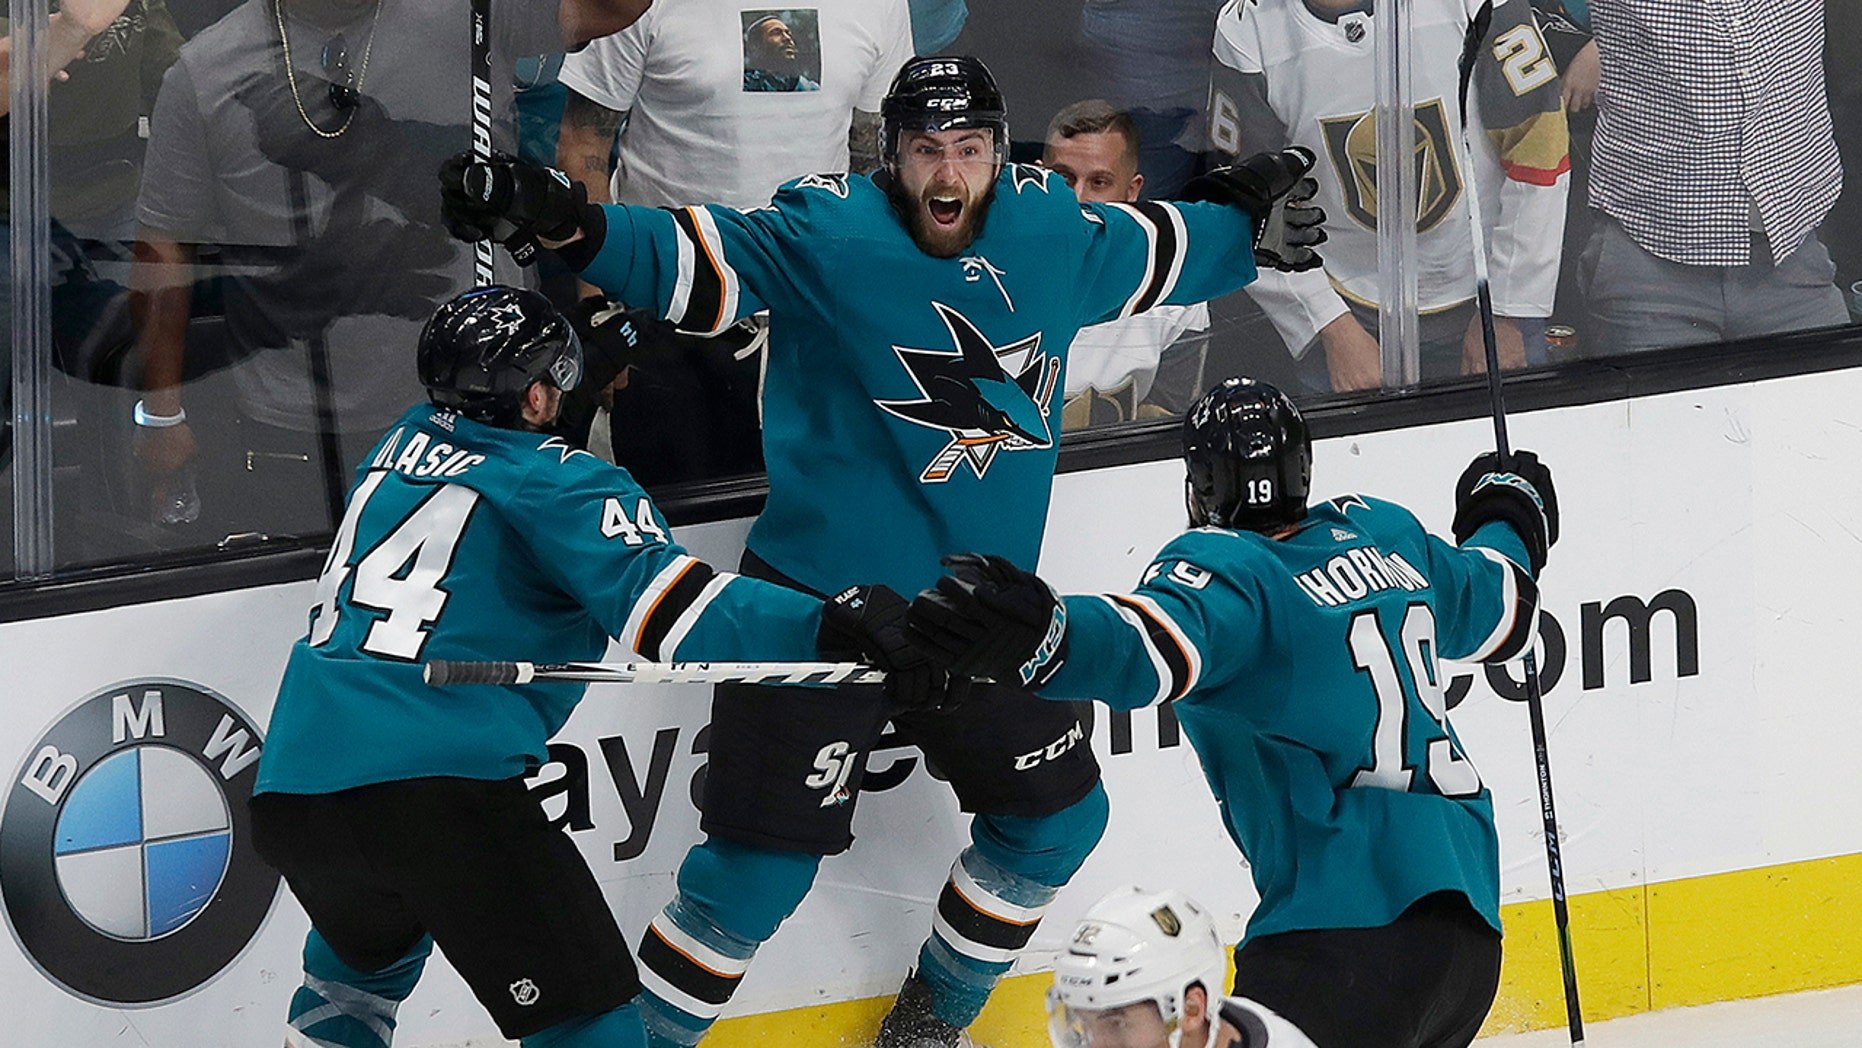 San Jose Sharks right wing Barclay Goodrow, center, celebrates with defenseman Marc-Edouard Vlasic (44) and center Joe Thornton (19) after scoring the winning goal against the Vegas Golden Knights during overtime of Game 7 of an NHL hockey first-round playoff series in San Jose, Calif., Tuesday, April 23, 2019. The Sharks won 5-4 in overtime. (AP Photo/Jeff Chiu)